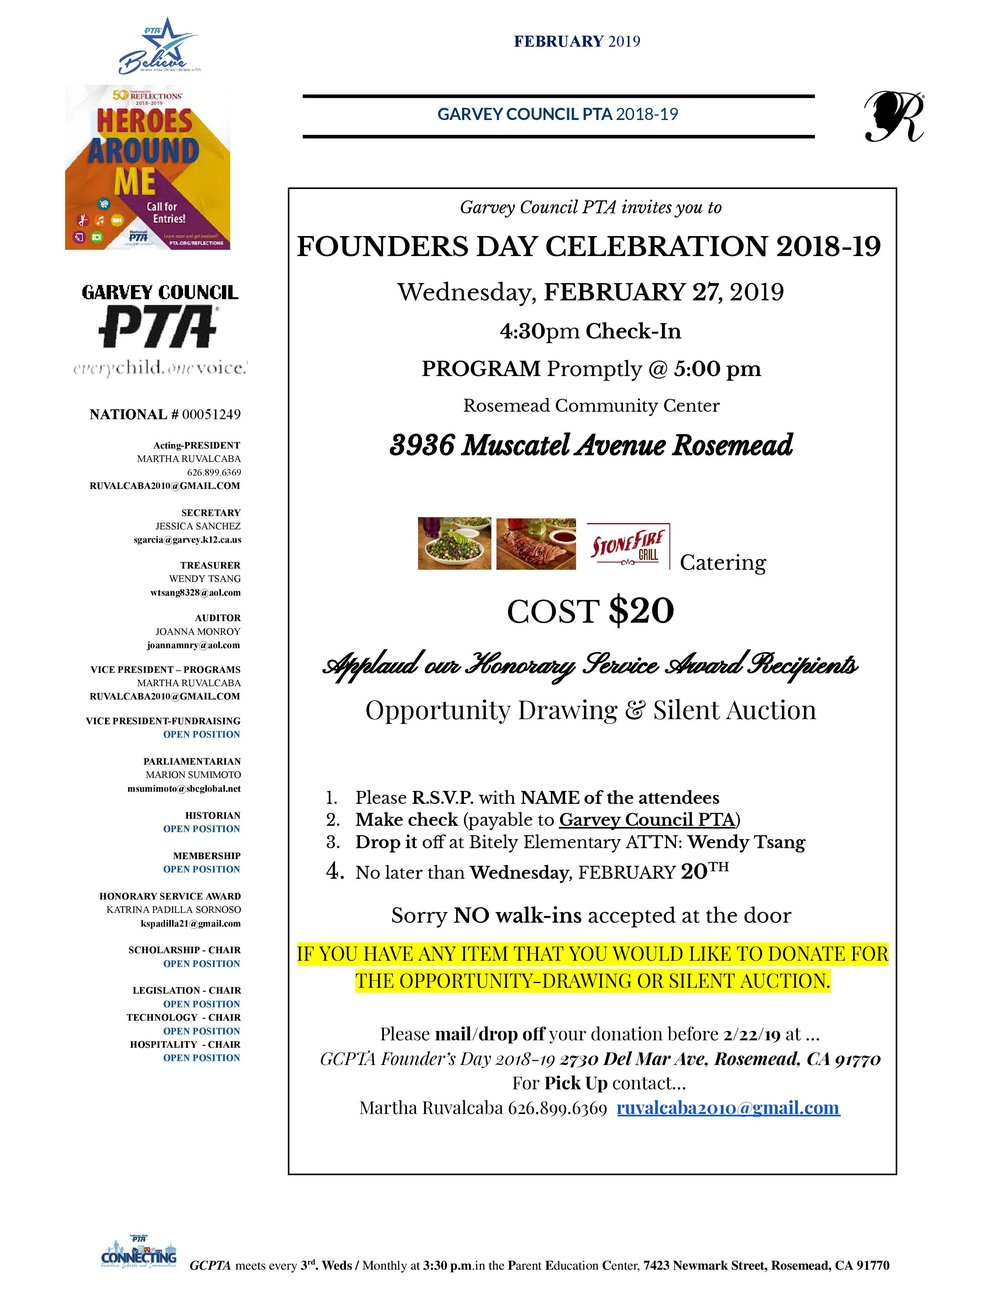 Founders day celebration  - February 27th, 2019